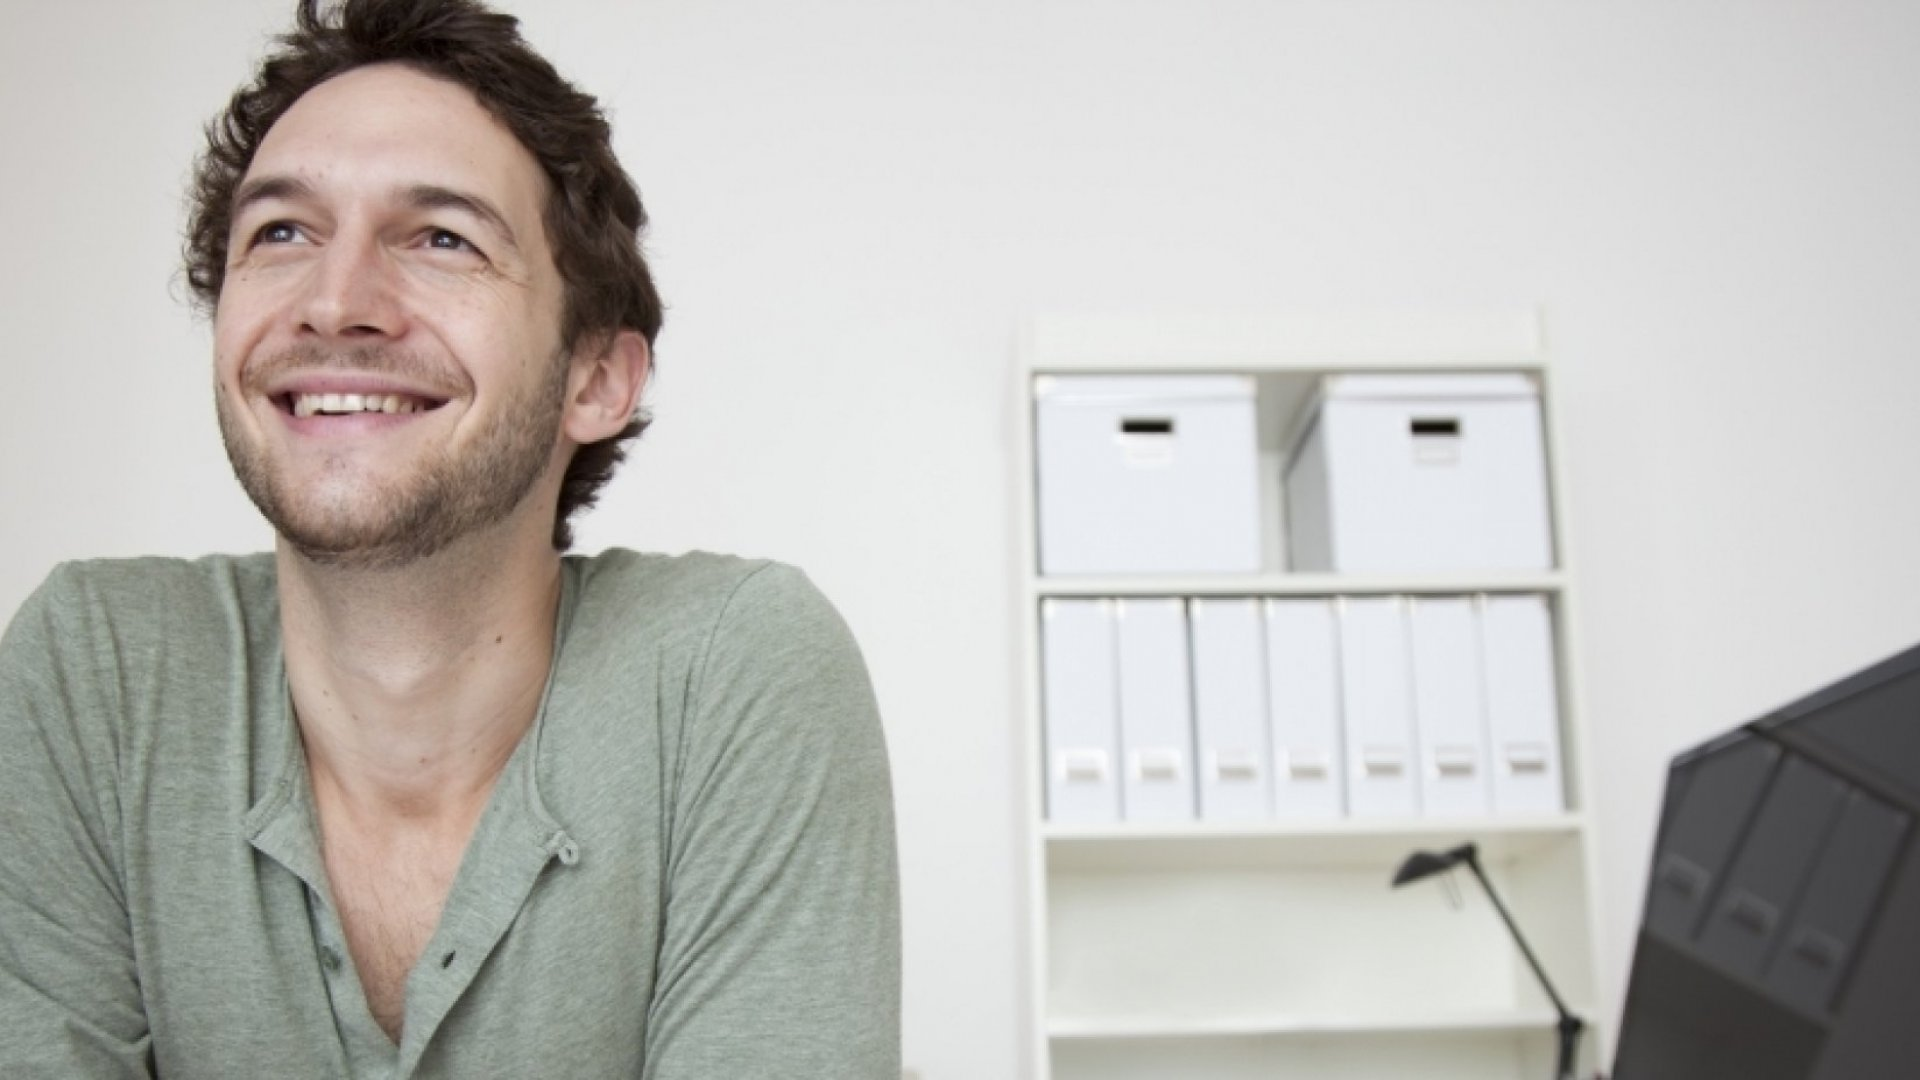 12 Ways to Become Happier at Work